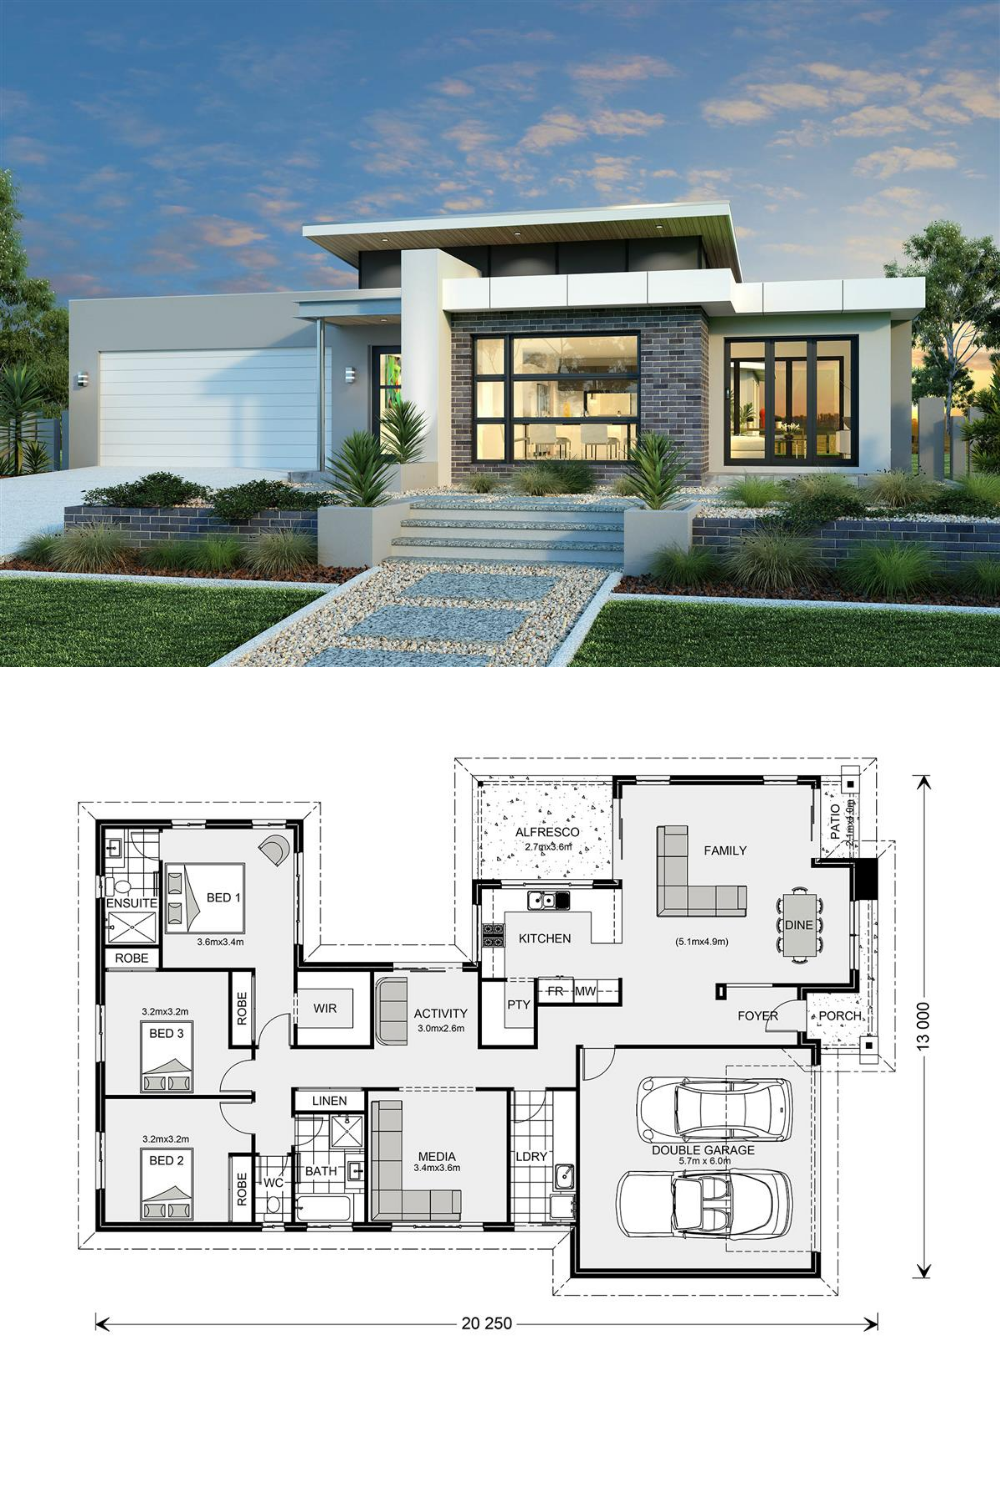 Splendid Three Bedroom Modern House Design Bungalow Style House Plans Beautiful House Plans Modern Contemporary House Plans